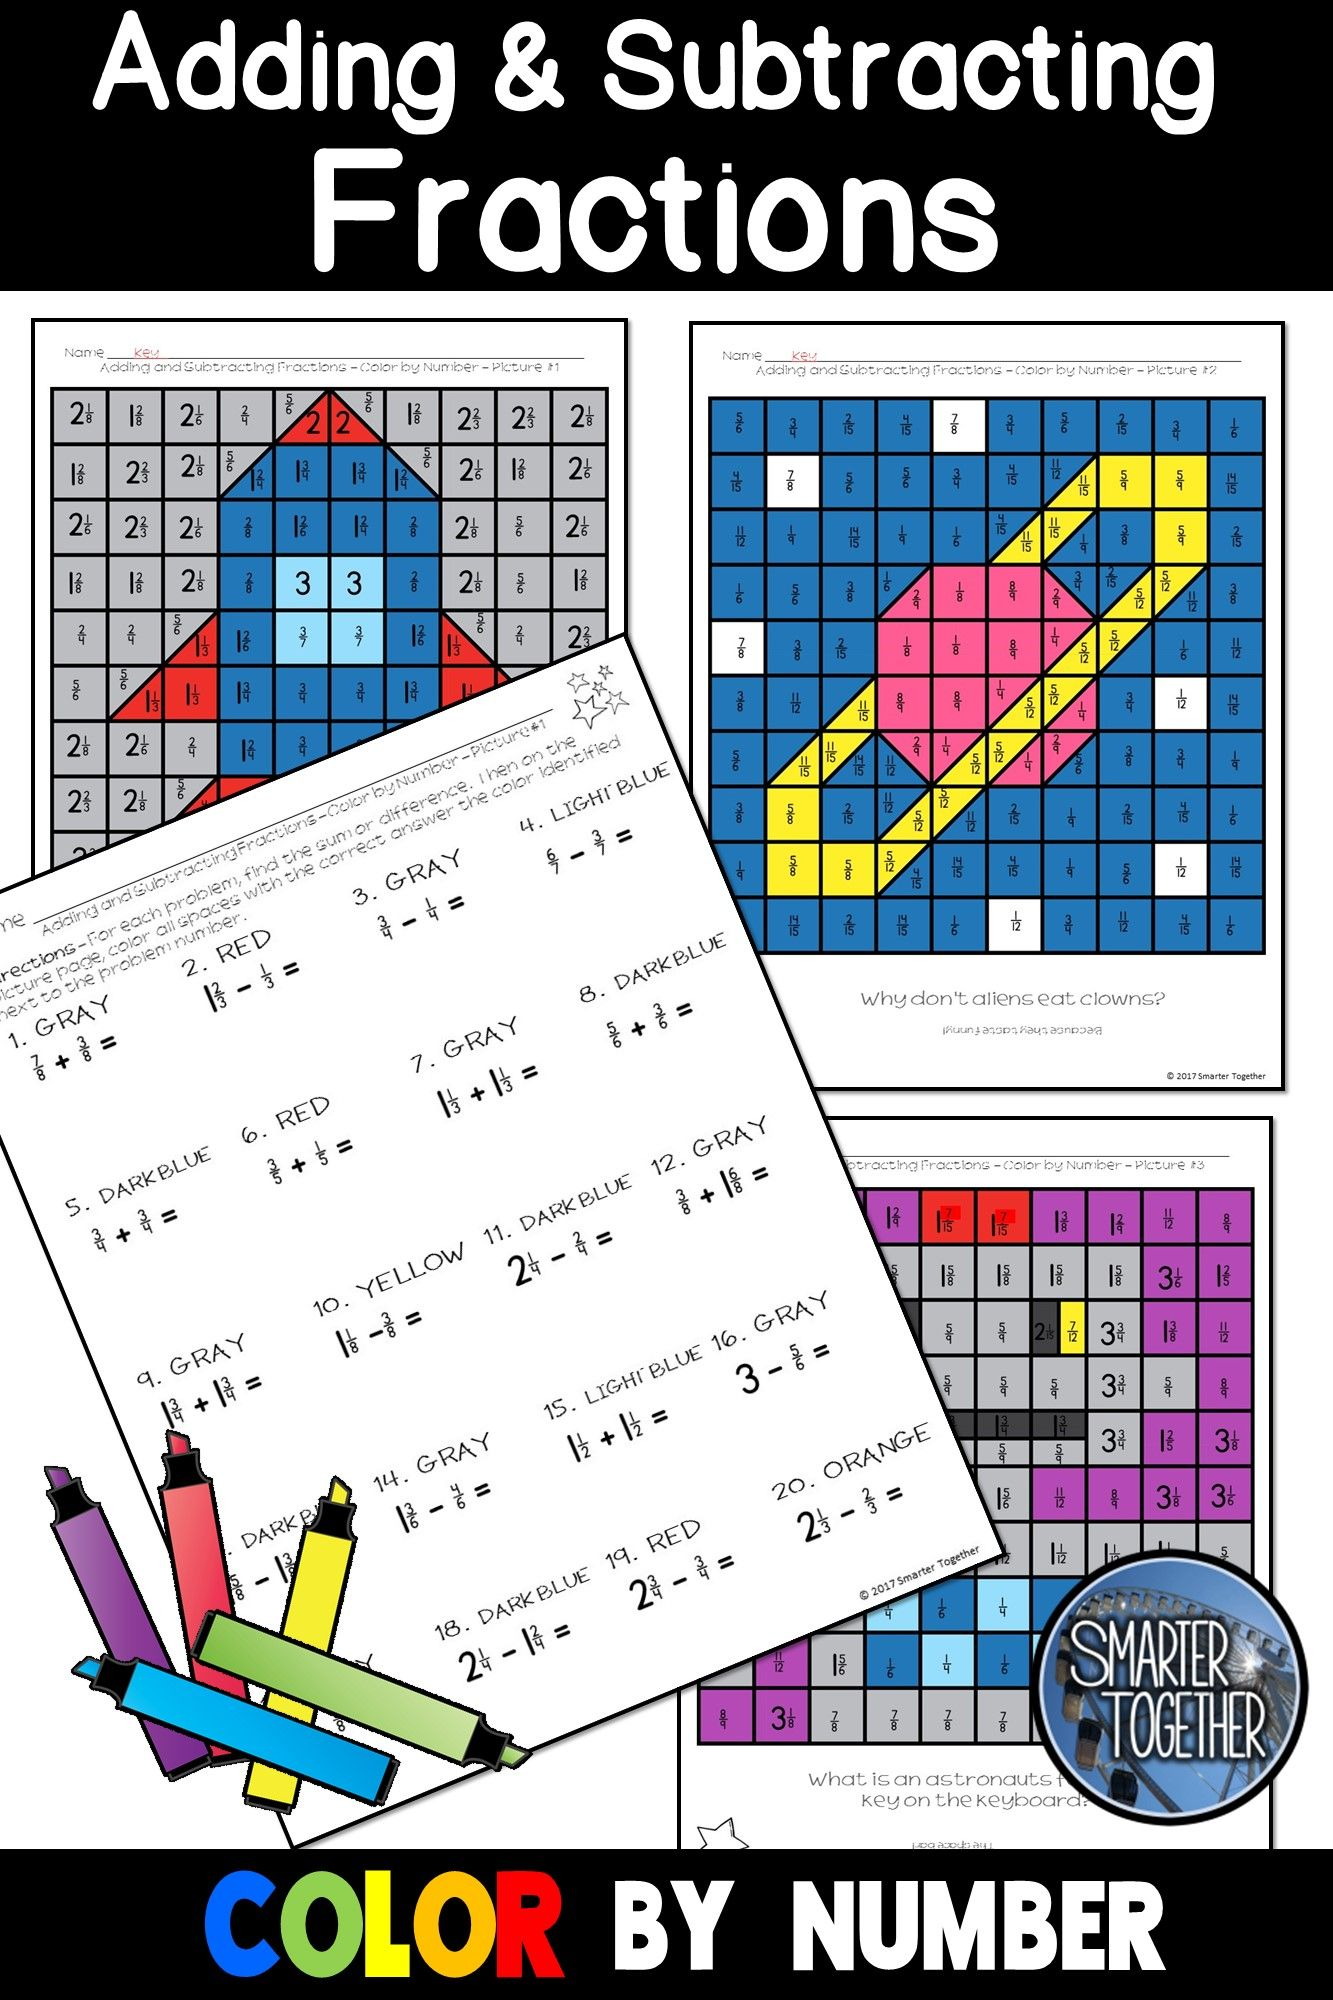 Adding And Subtracting Fractions Adding And Subtracting Fractions Subtracting Fractions Fractions Adding and subtracting fraction bingo